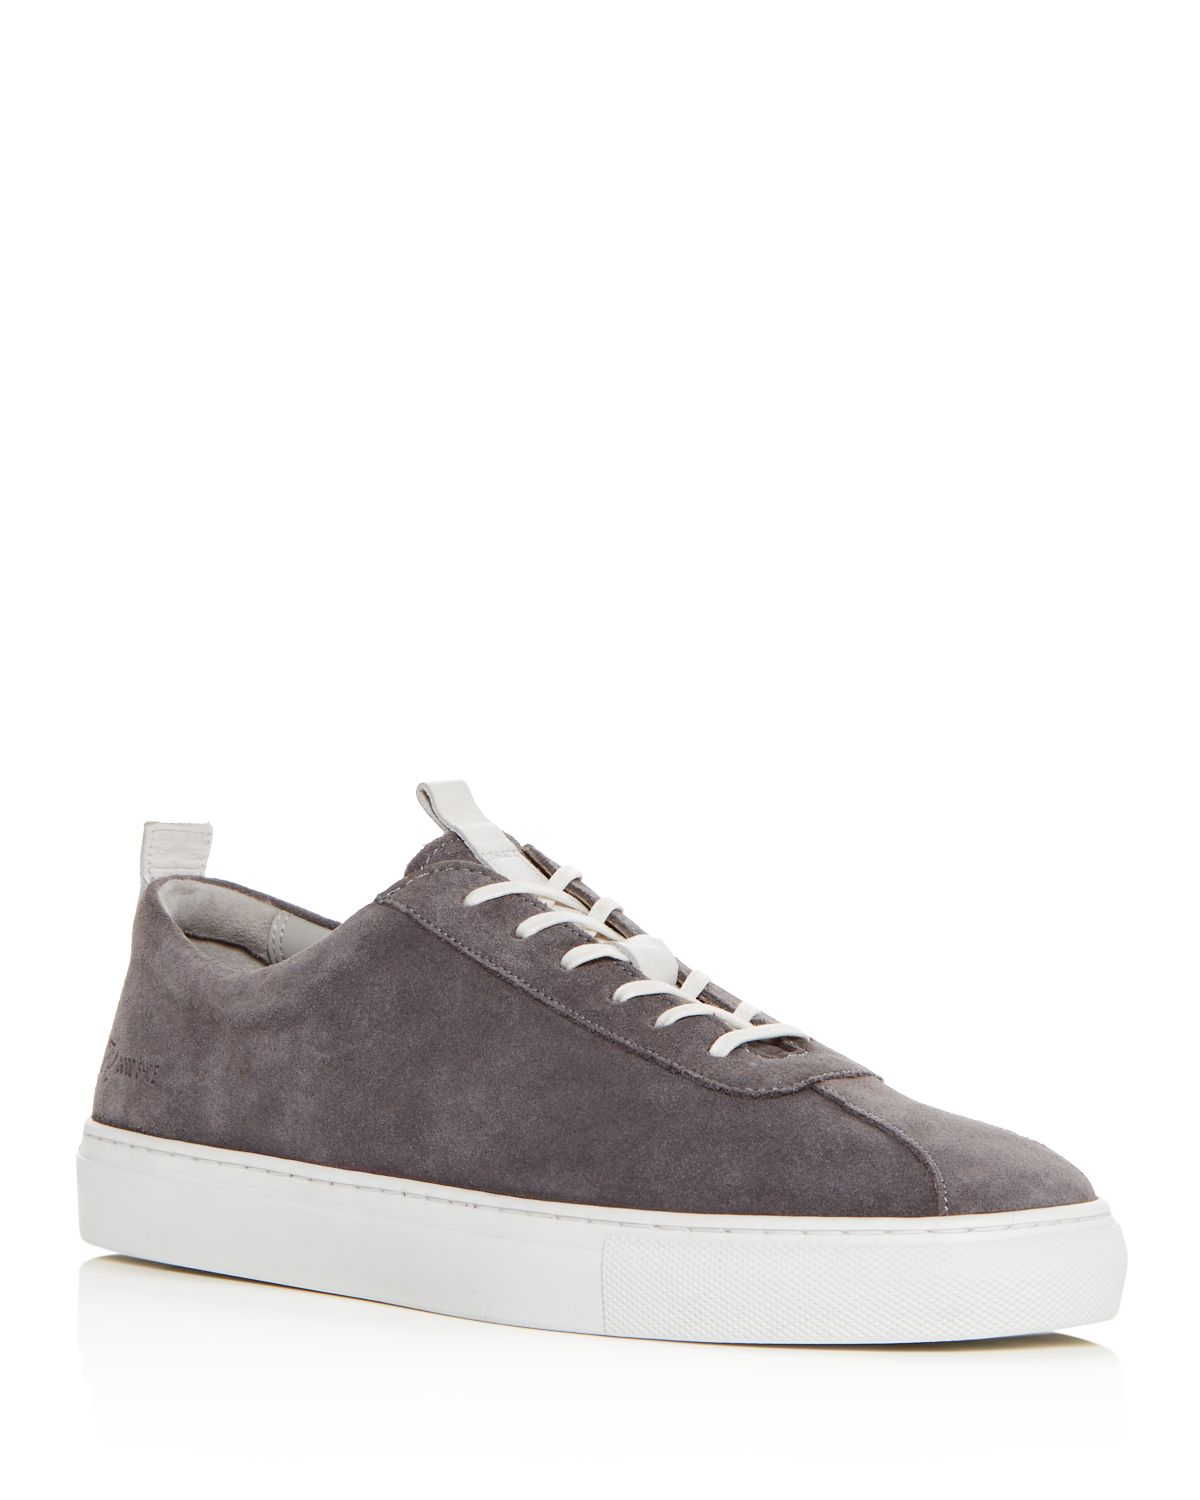 GRENSON Men's Lace Up Sneakers